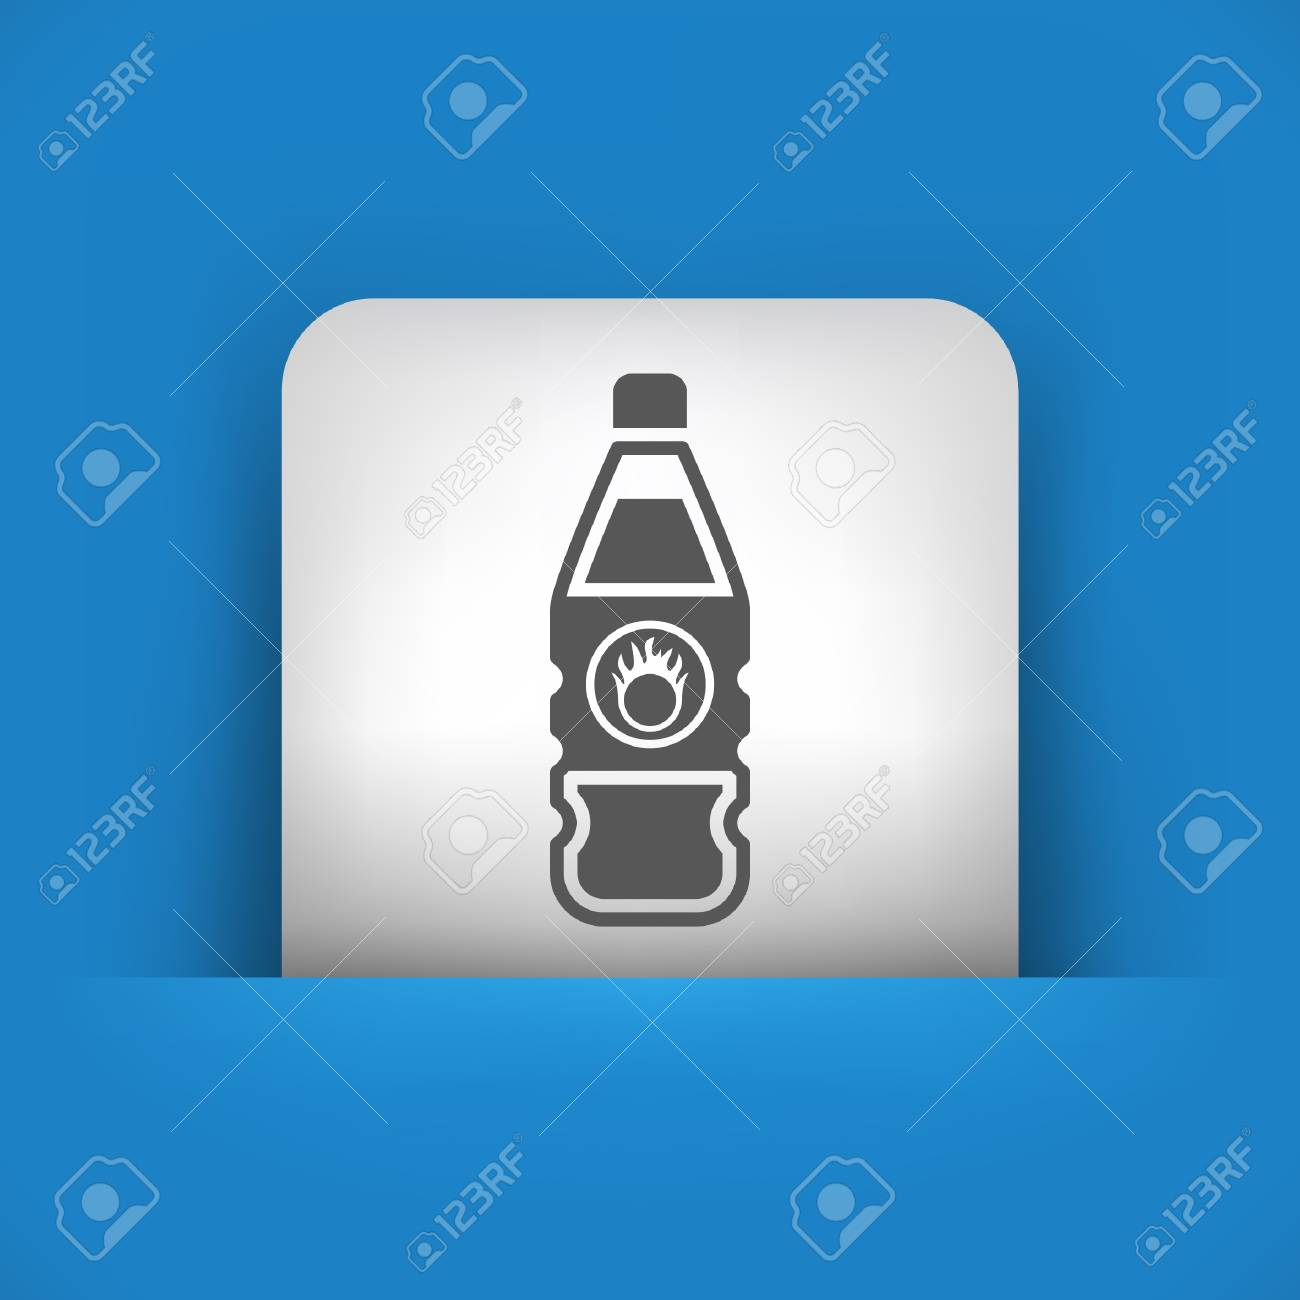 Vector illustration of single blue and gray isolated icon. Stock Vector - 17783105